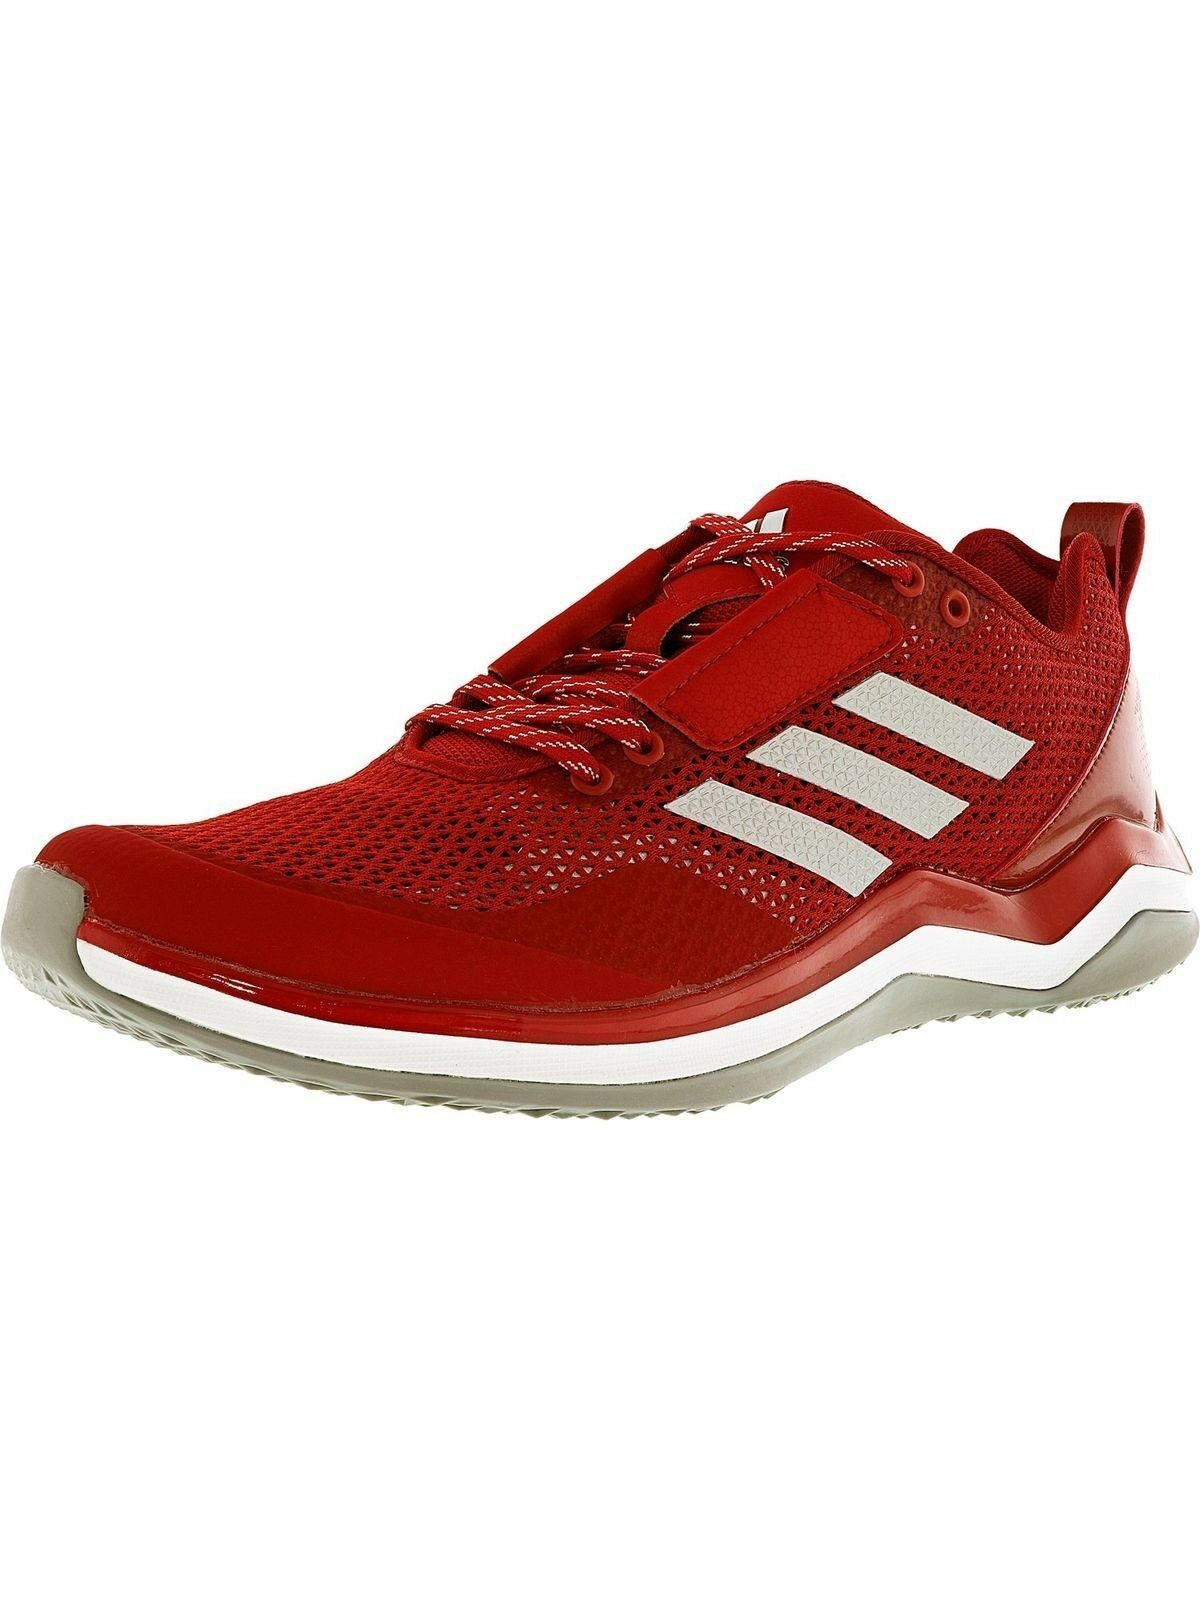 Adidas Size 18 Performance Speed Shoes 3.0 Cross-Trainer Men's Shoes Speed Red/ Sil/Whi New 76b289